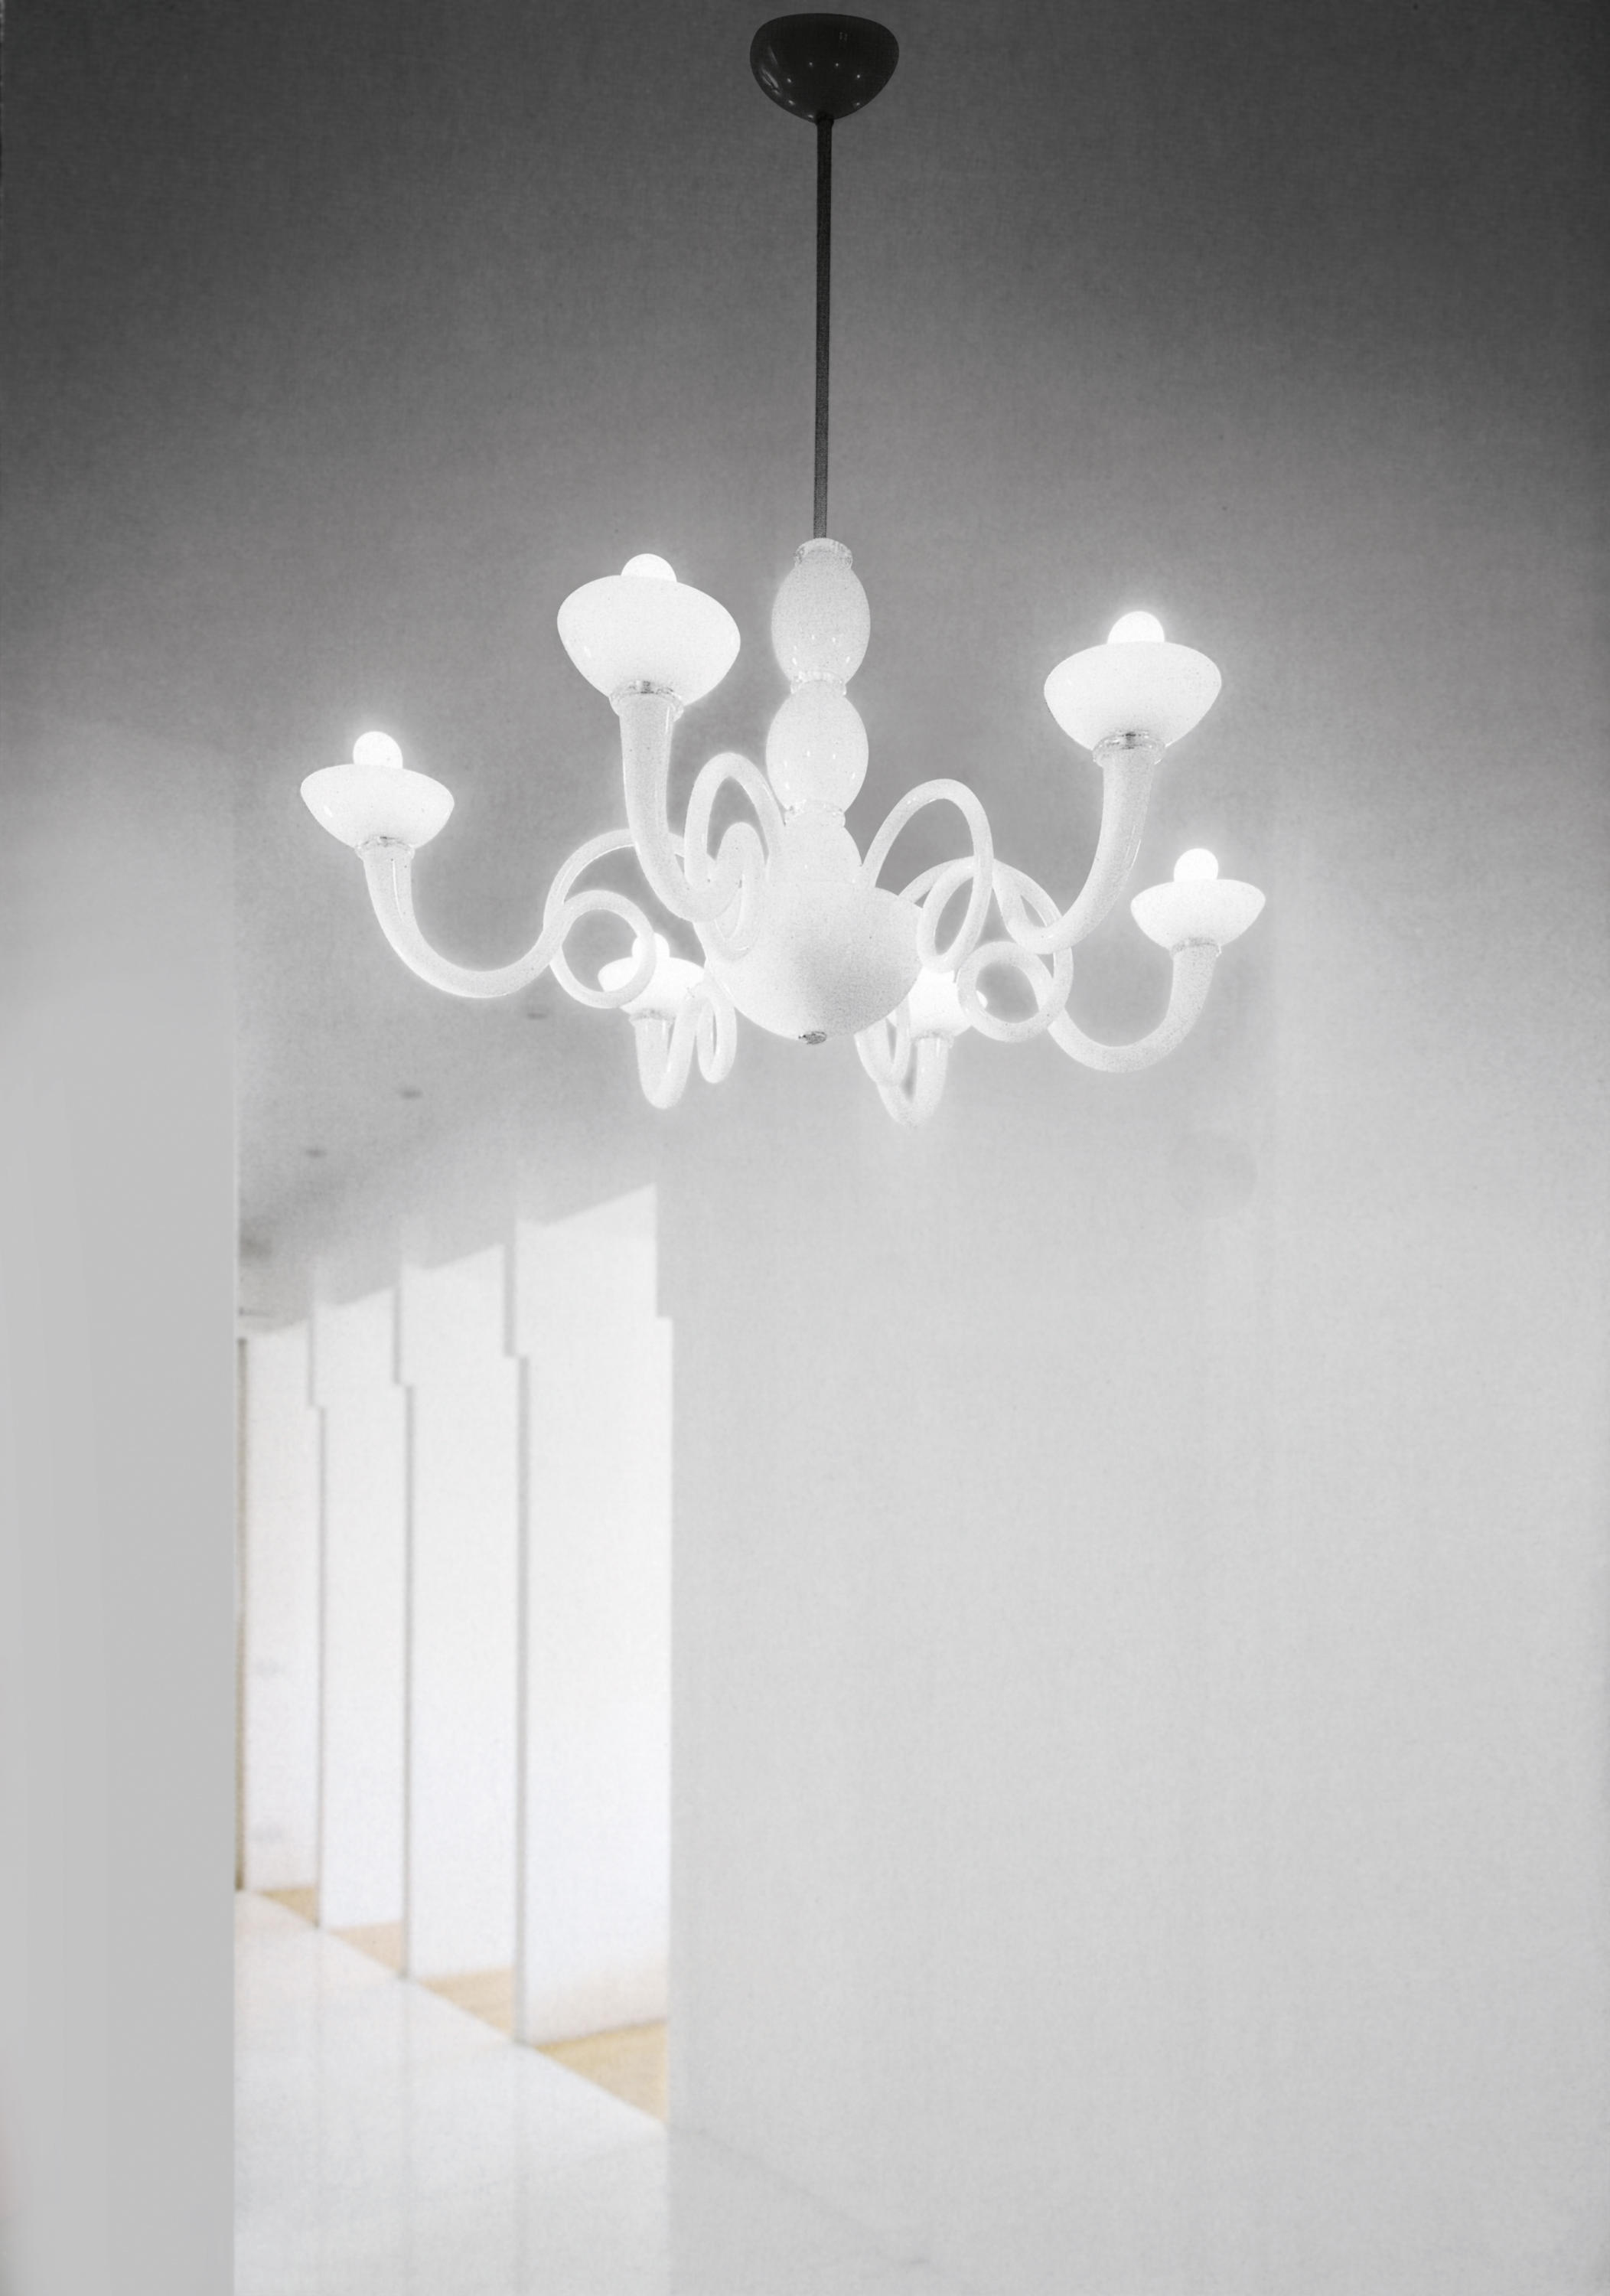 Pantalica Suspension Lamp Chandeliers From Artemide